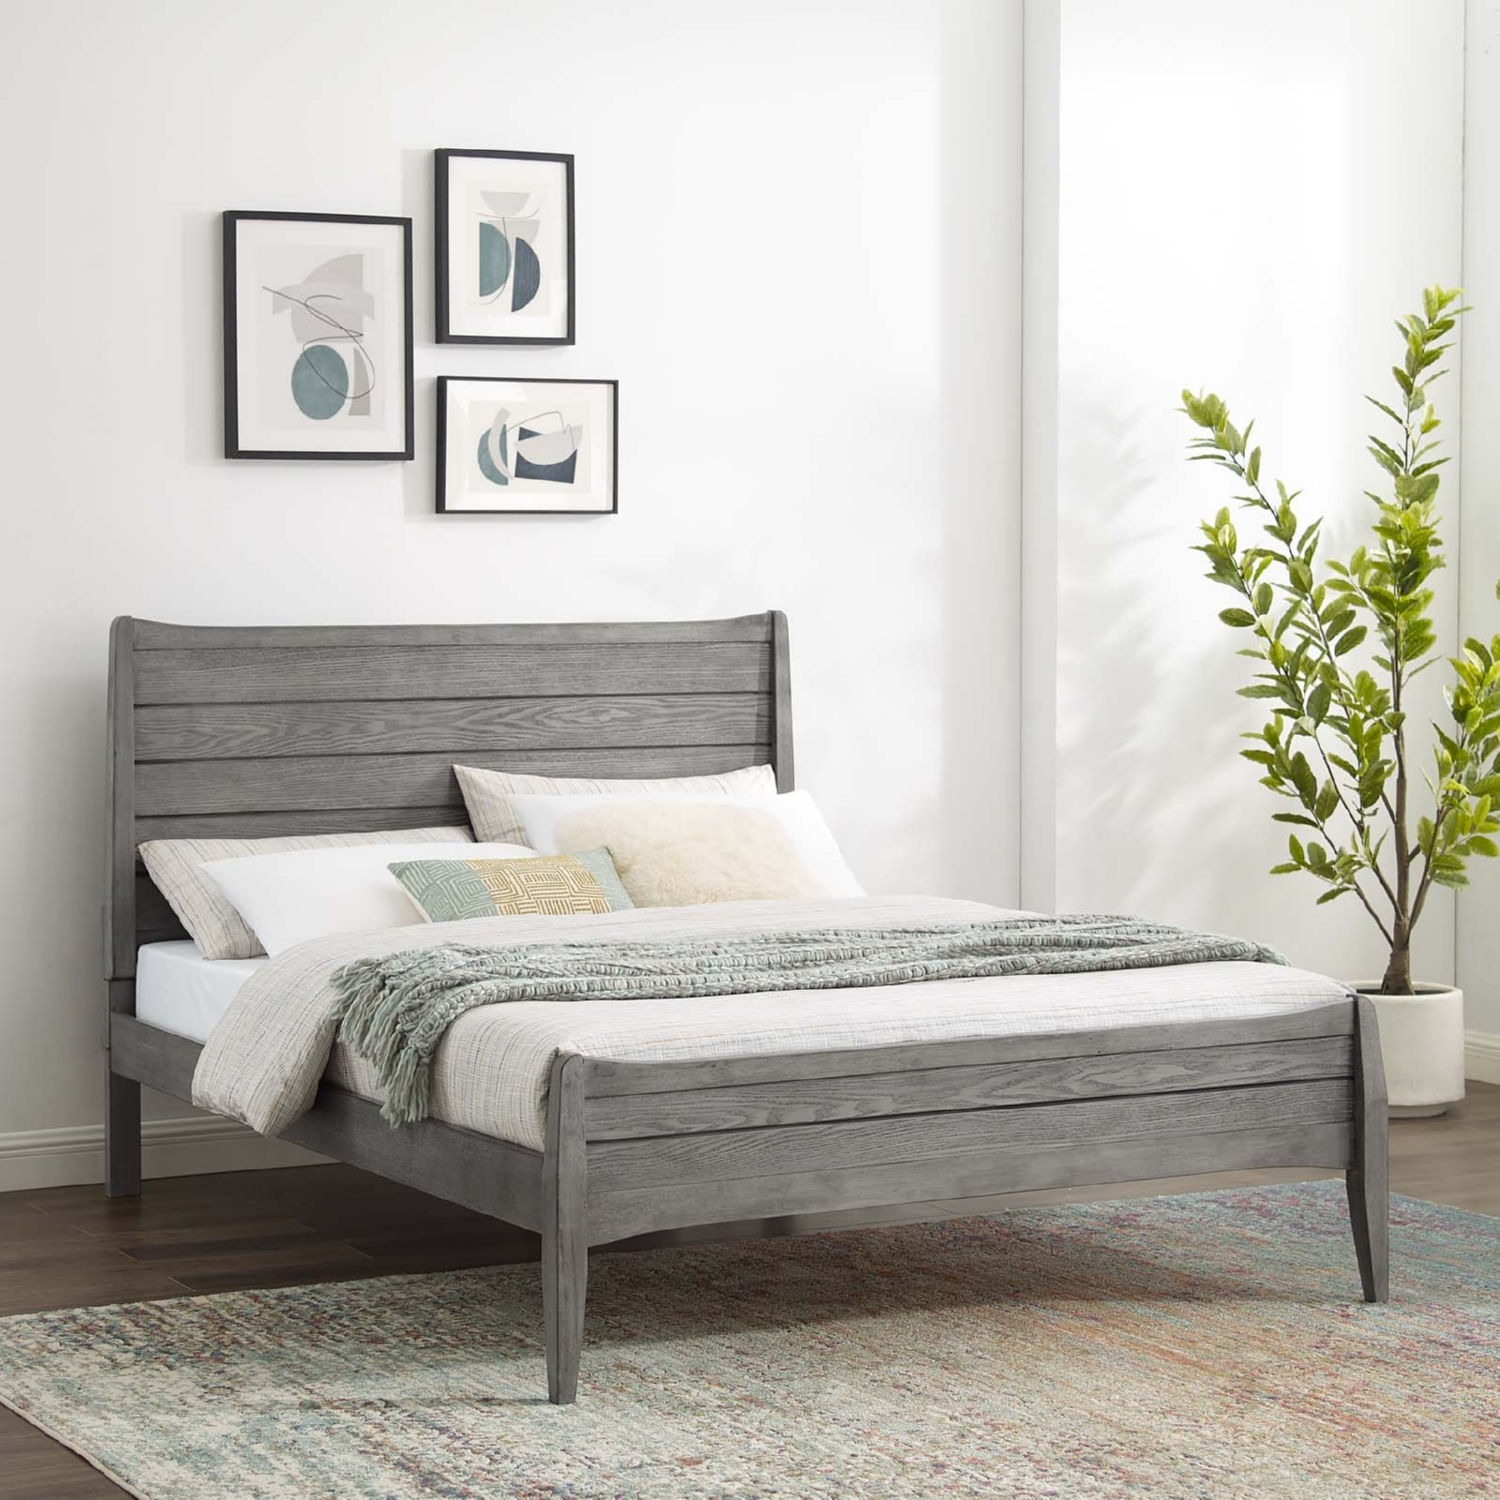 Rustic Queen Platform Bed In Gray Wood Finish - image-7